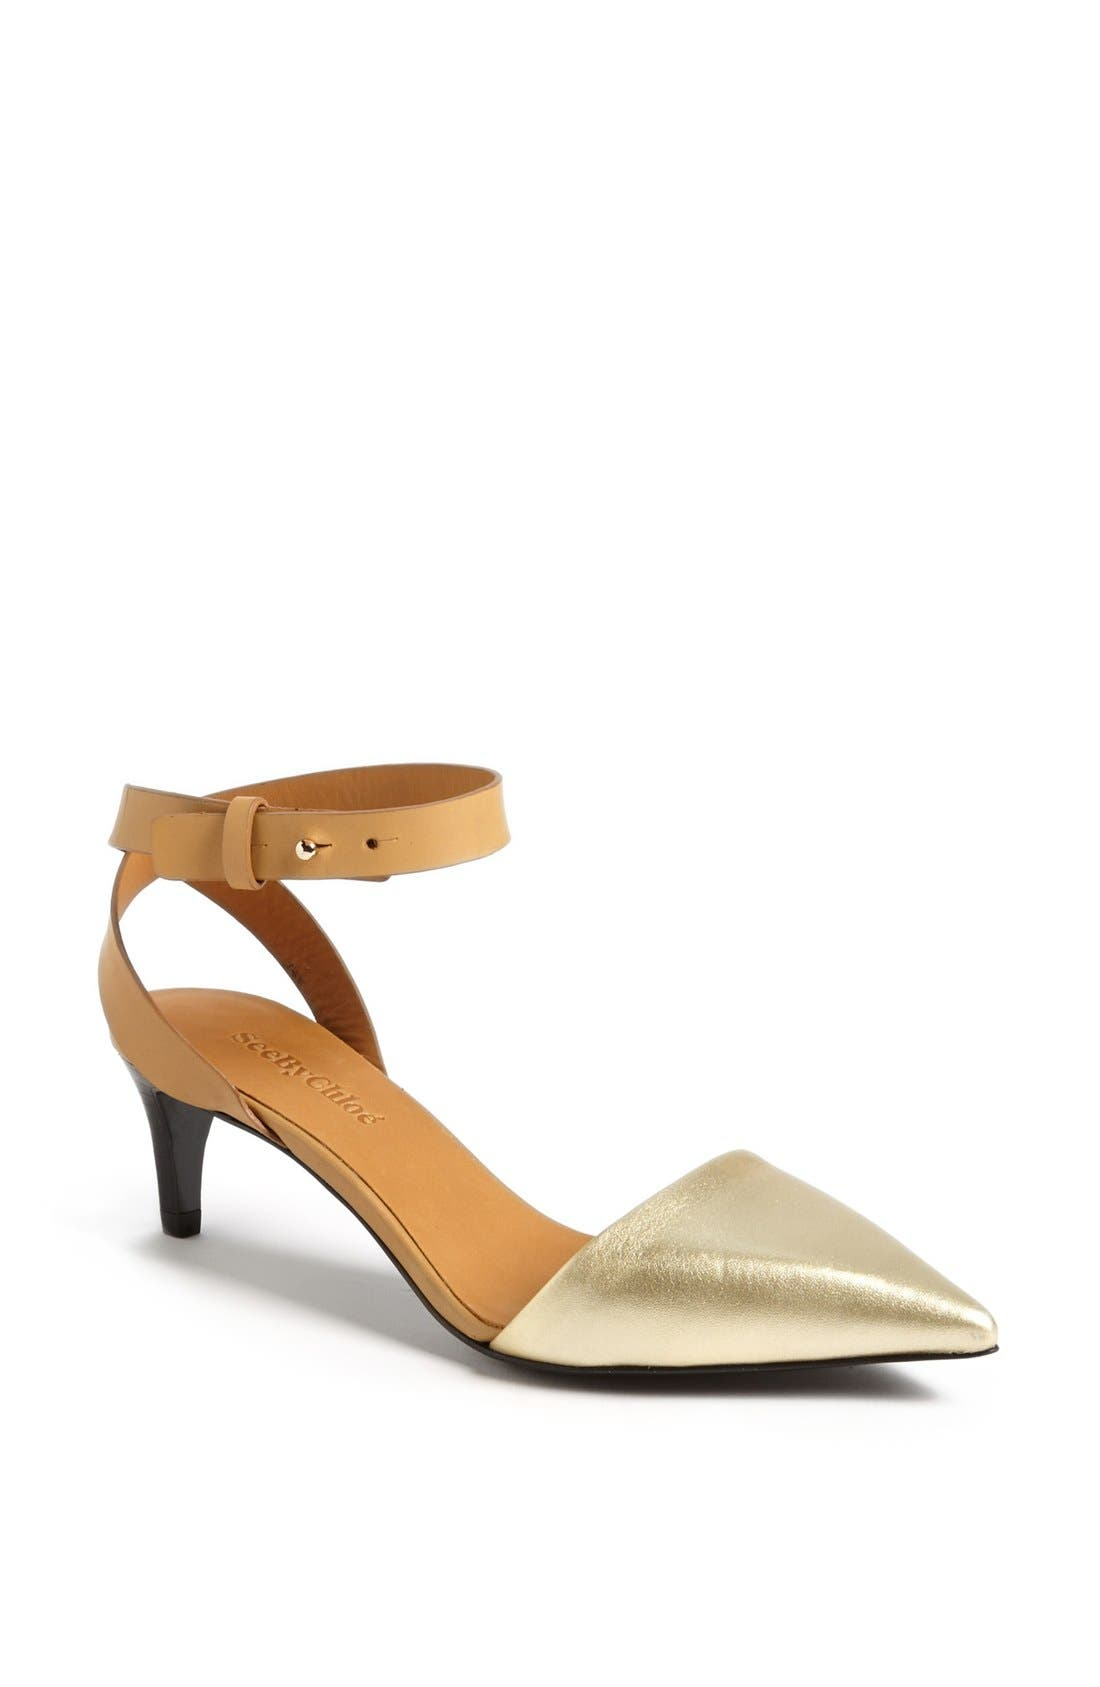 Alternate Image 1 Selected - See by Chloé 'Hera' Ankle Strap D'Orsay Pump